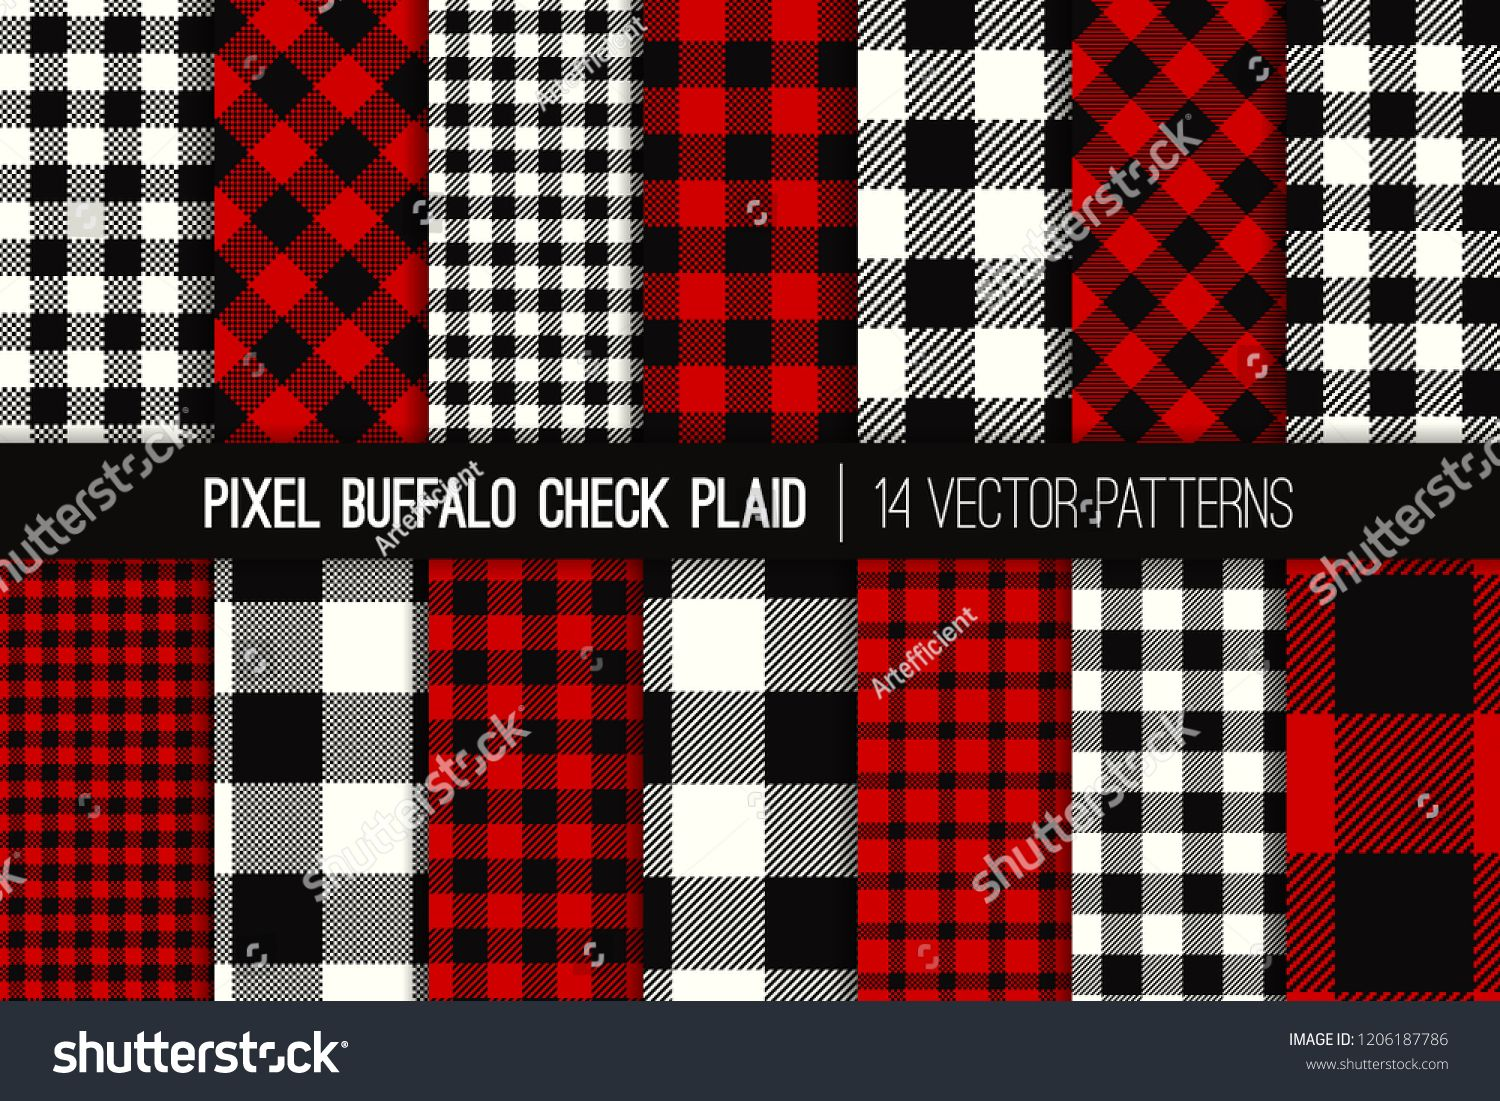 Lumberjack Buffalo Check Plaid Vector Patterns Red Black And White Christmas Backgrounds Hipster Flannel Shir Buffalo Check Plaid Vector Pattern Red Pattern